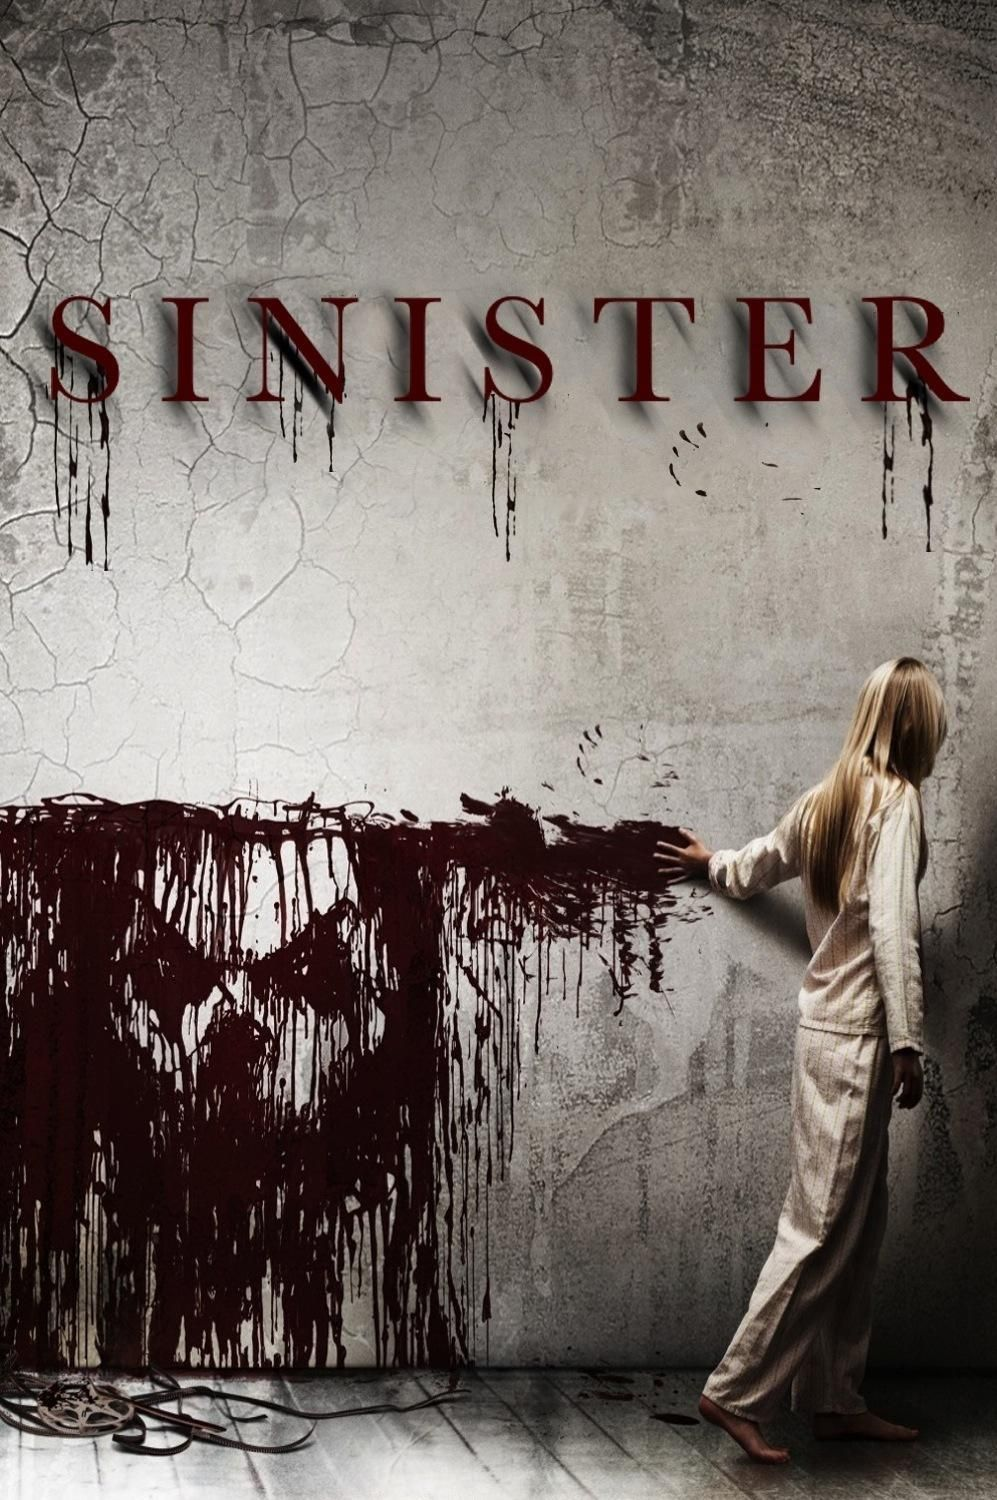 sinister full movie eng sub